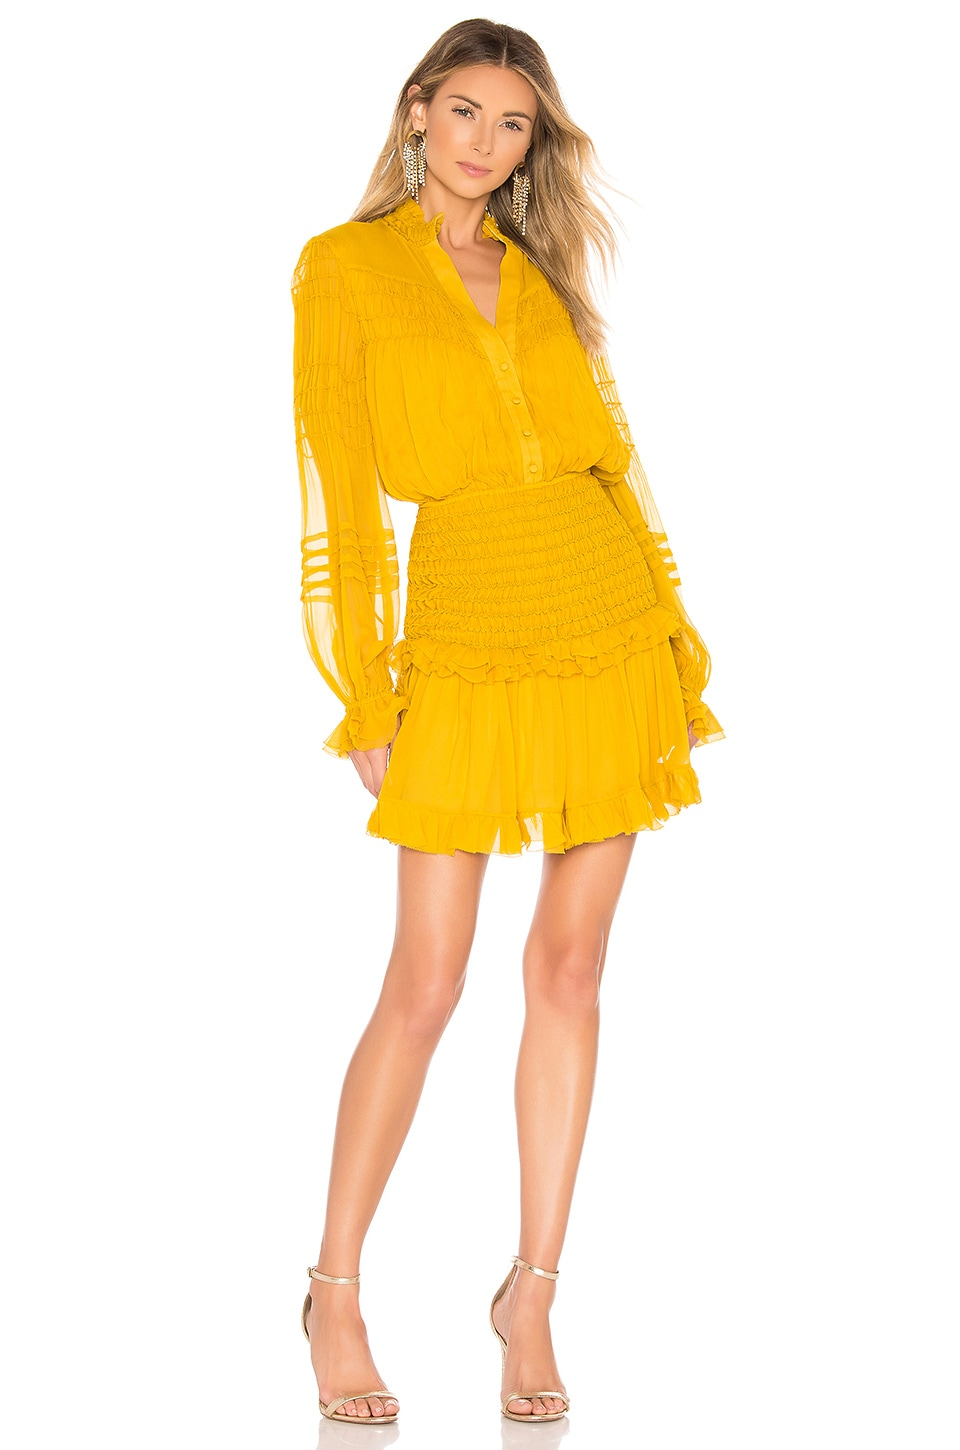 Alexis X REVOLVE Shaina Dress in Yellow